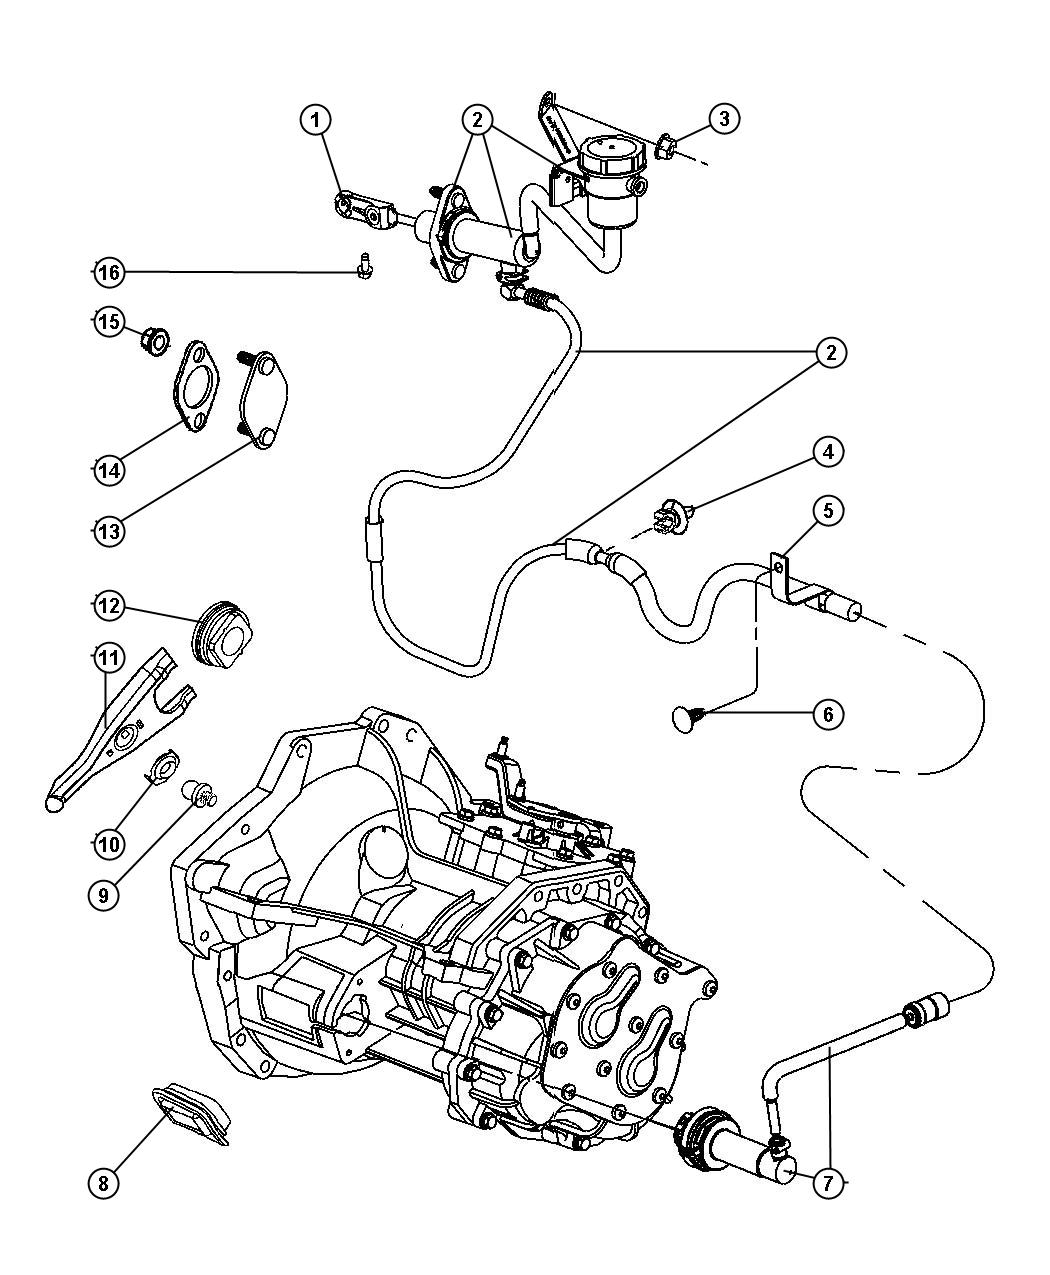 Dodge Neon Pcm Wiring Diagram